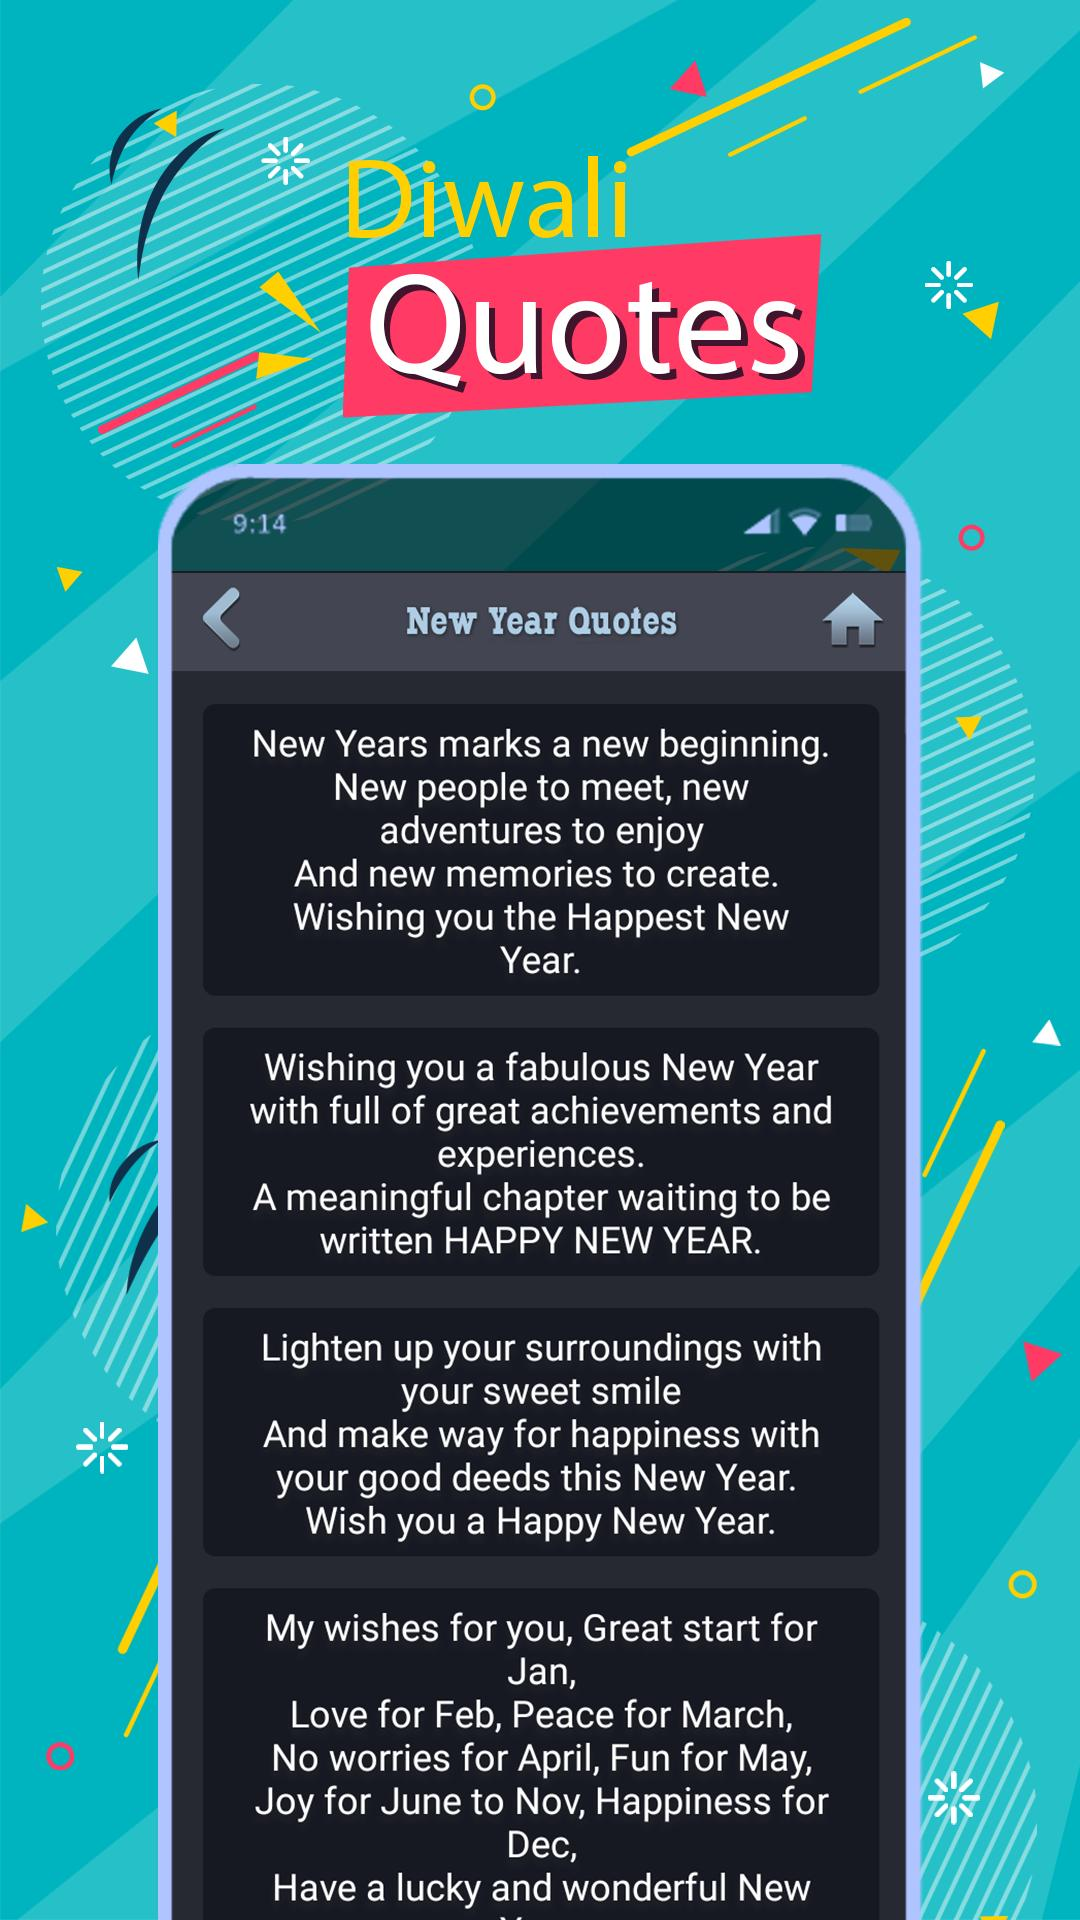 hindu festival wishes diwali quotes message 2020 for android apk download apkpure com